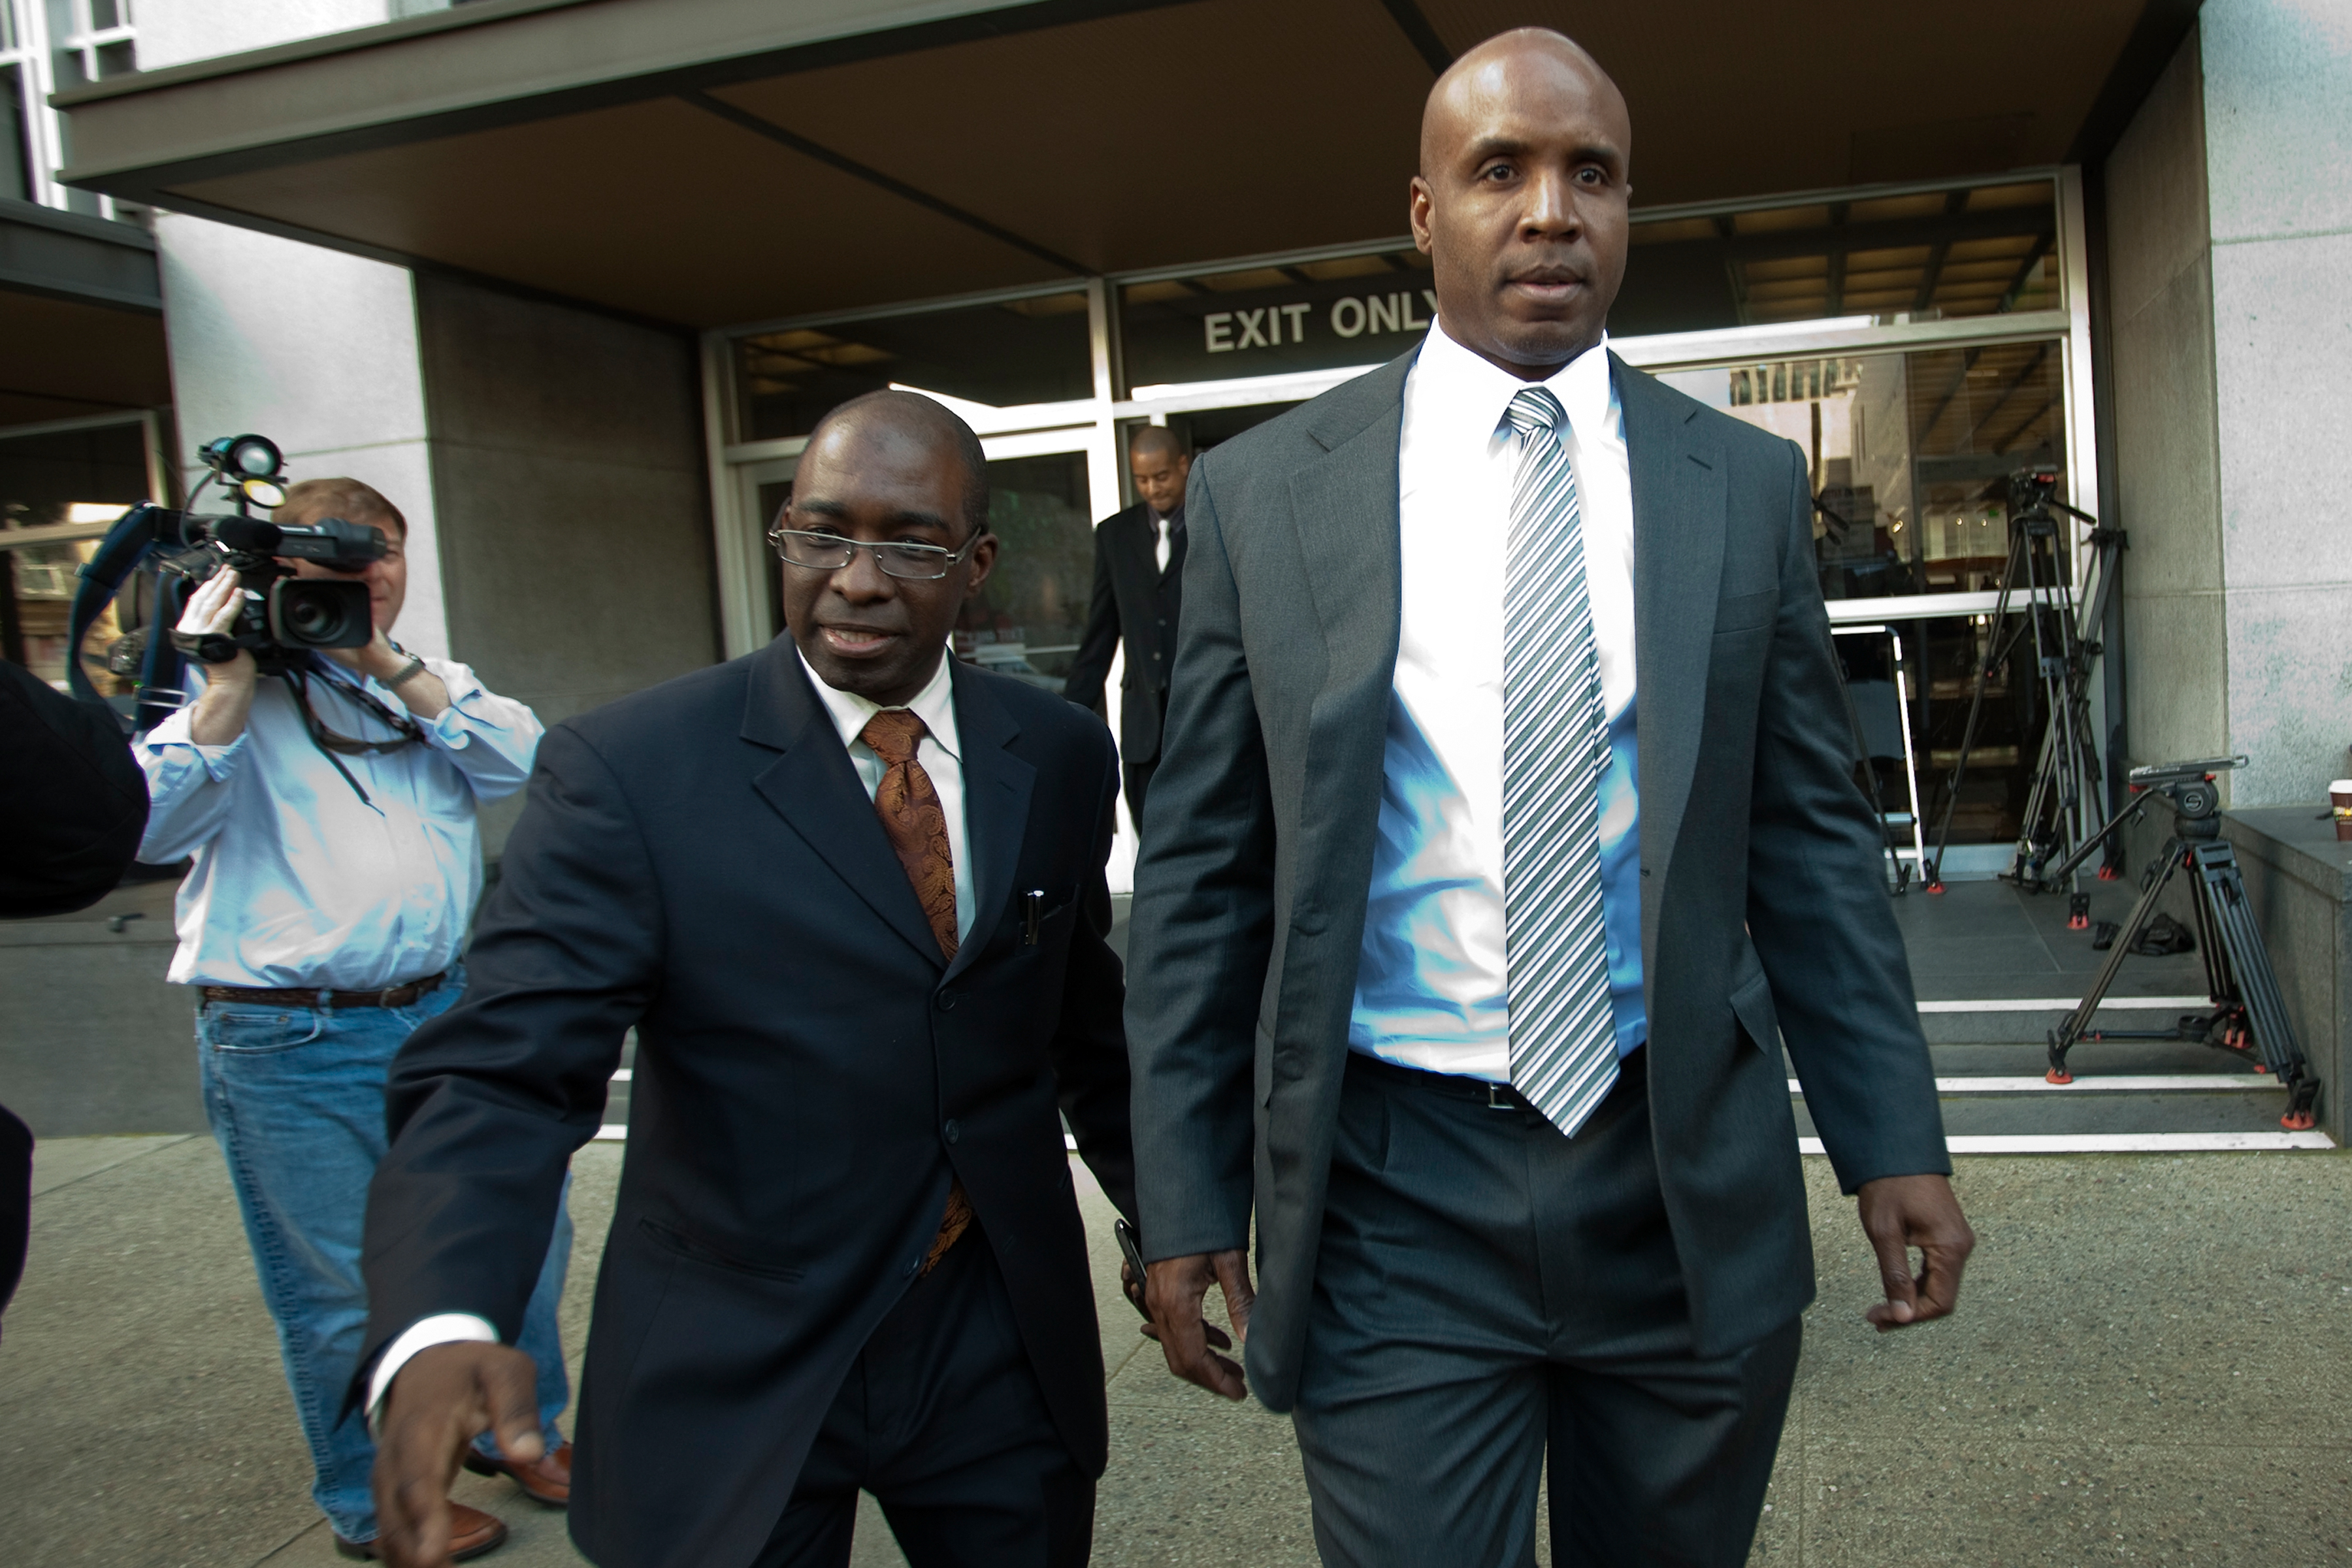 SAN FRANCISCO, CA -APRIL 8:  Former major league baseball player Barry Bonds leaves the Phillip Burton Federal Building and United States Court House April 8, 2011 in San Francisco, California. The jury is deliberating the case in which Barry Bonds is acc